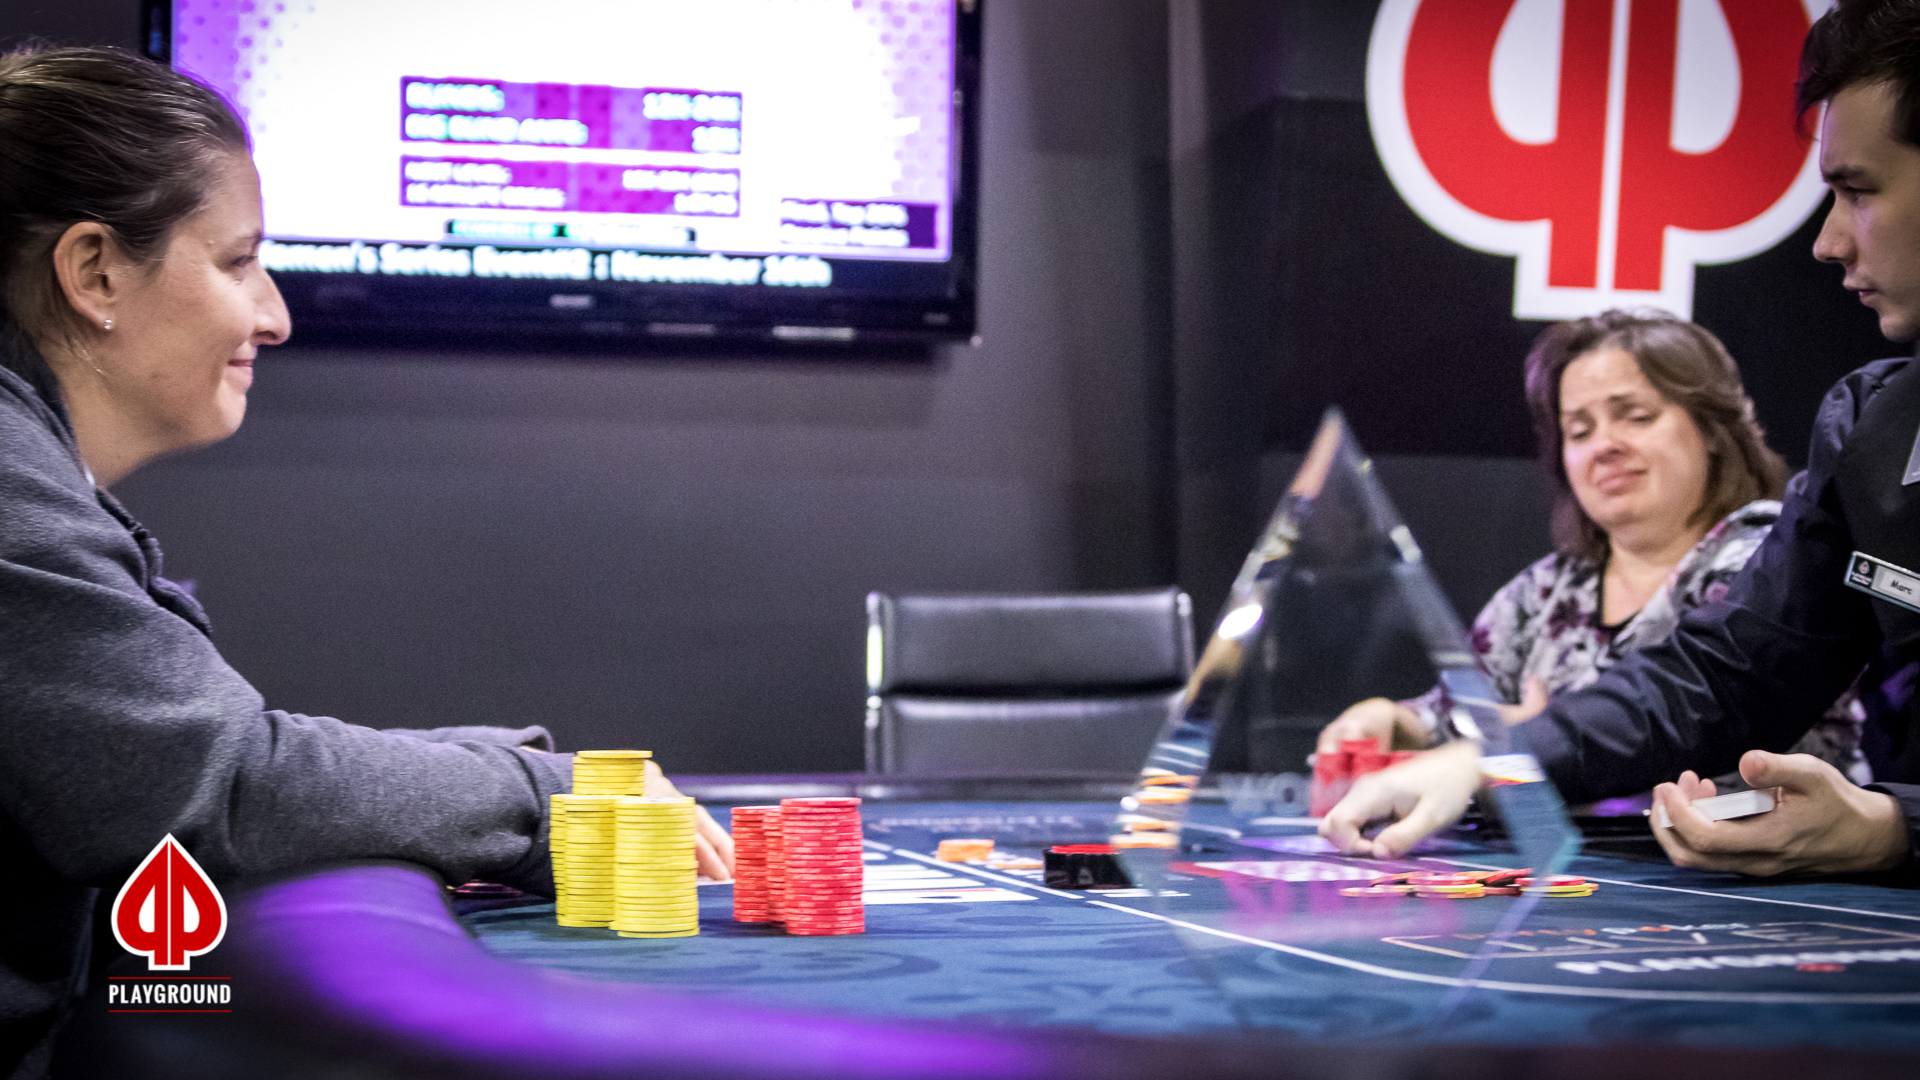 Ruggiero out in third, the tournament is now heads-up